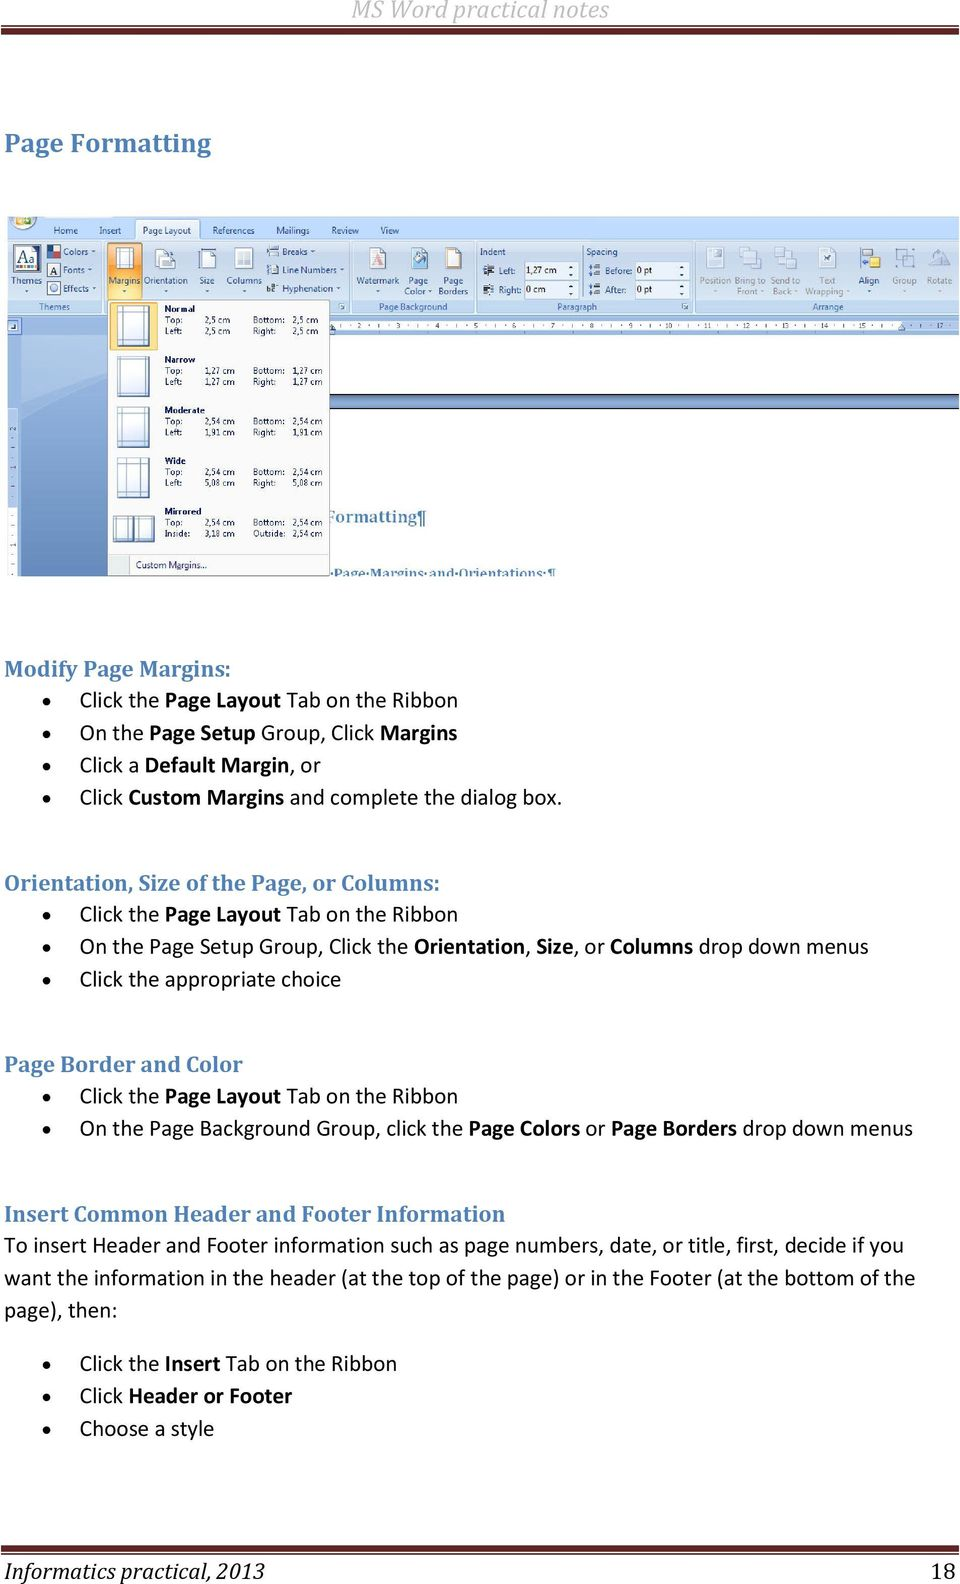 Border and Color Click the Page Layout Tab on the Ribbon On the Page Background Group, click the Page Colors or Page Borders drop down menus Insert Common Header and Footer Information To insert